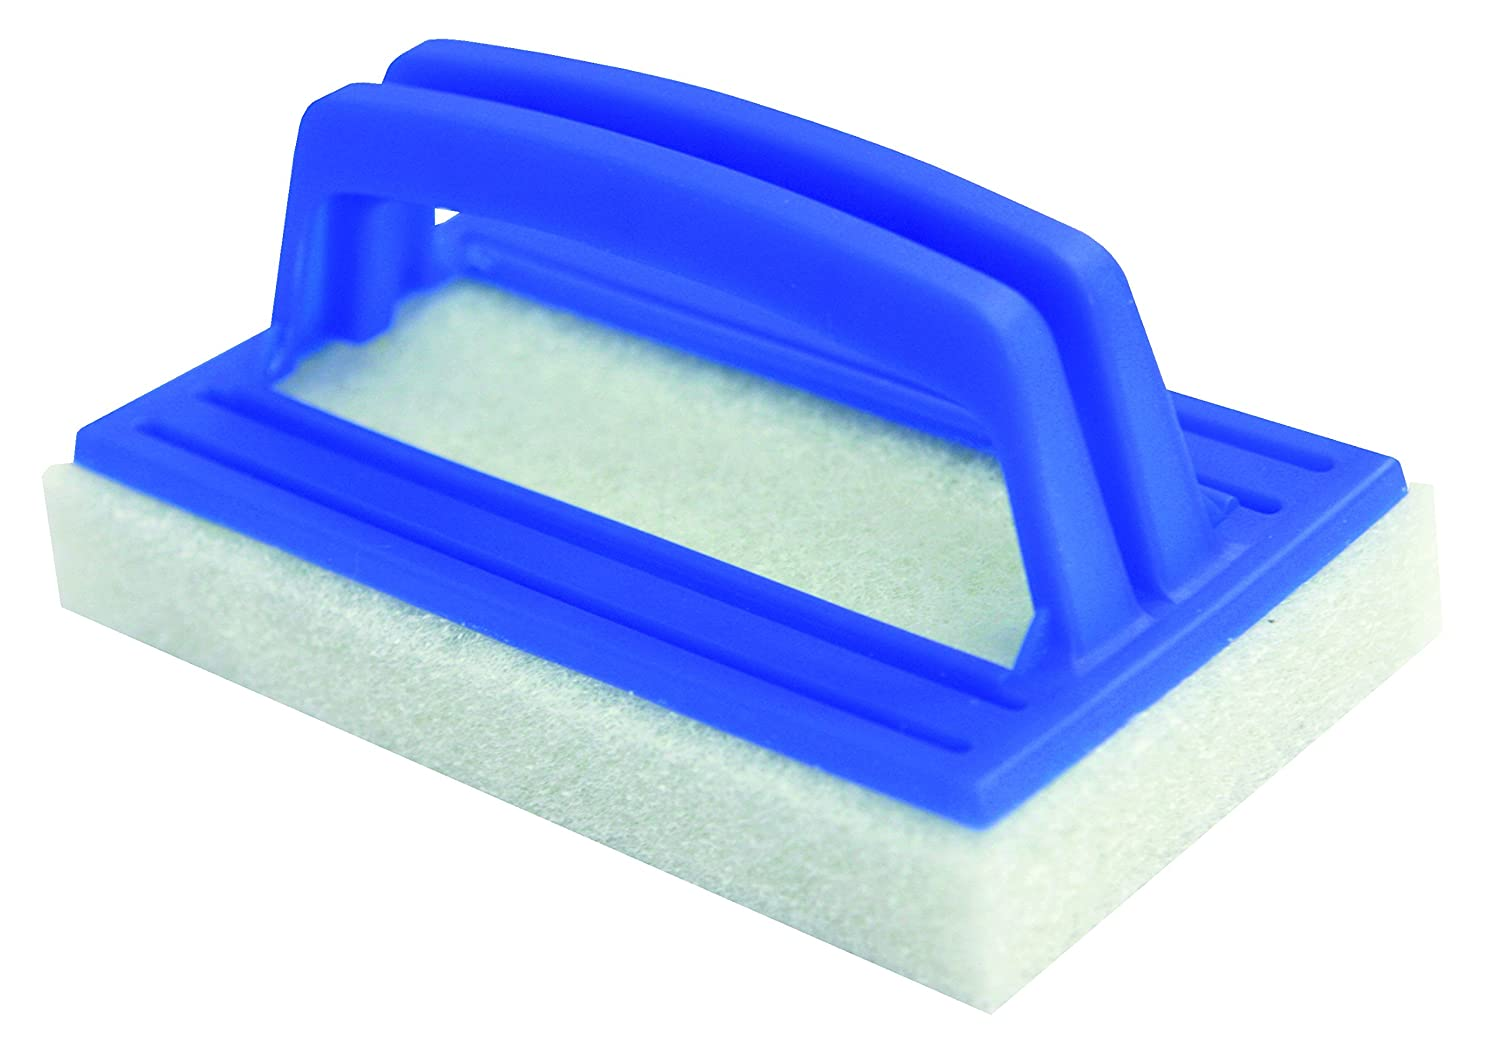 Steinbach removing leaves from swimming pools Scrubbing Brush with Handle deluxe Blue 145 x 85 x 25 MM 061130